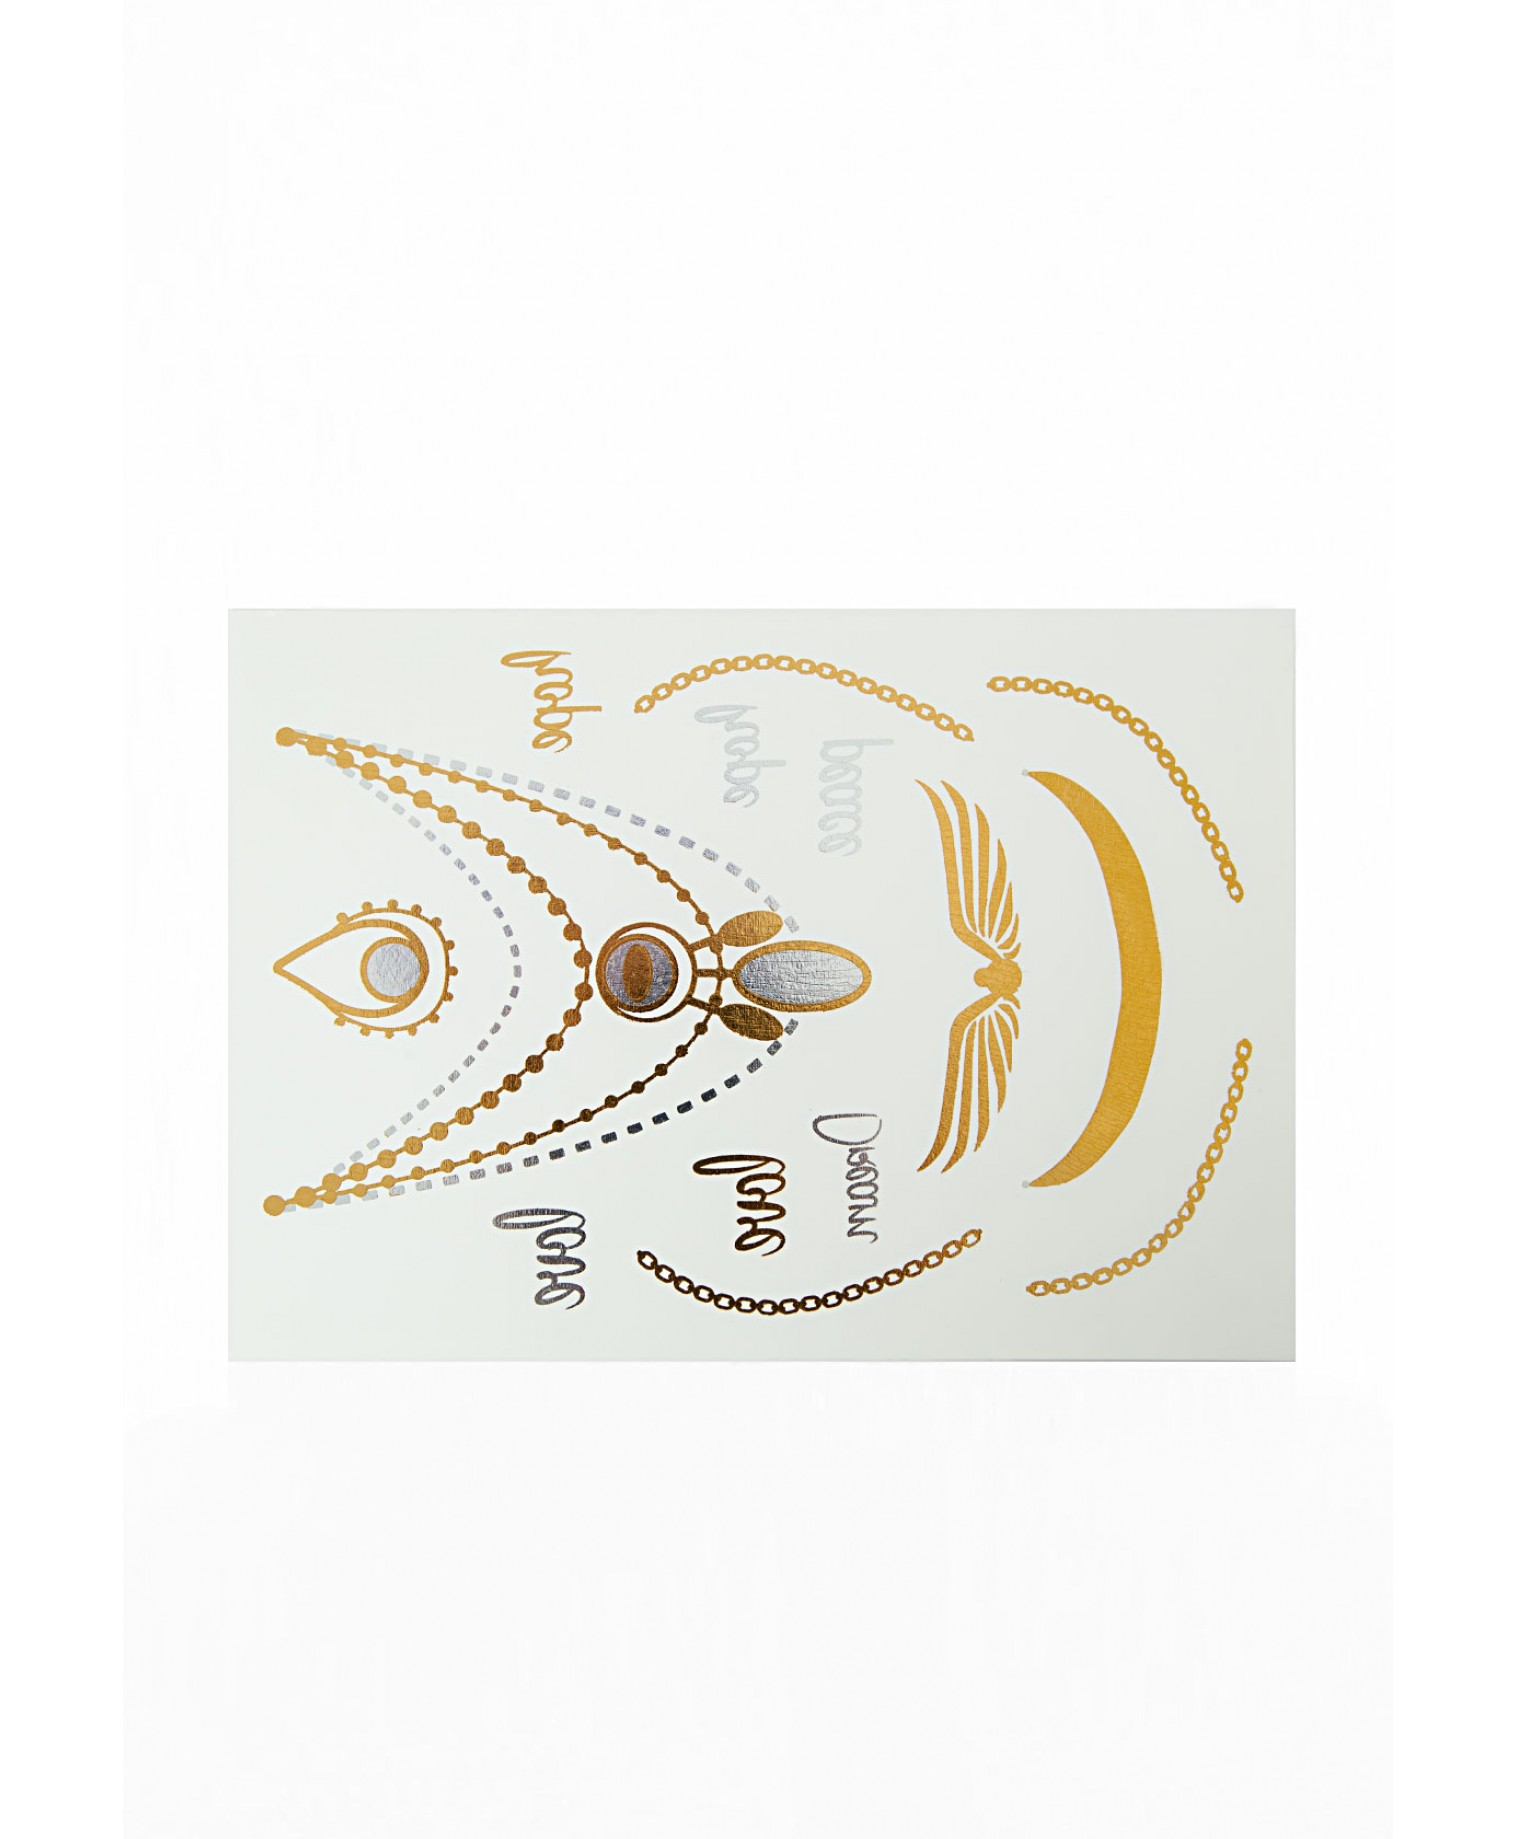 SEEKERS OF SUN LUXURY TEMPORARY TATTOOS 4